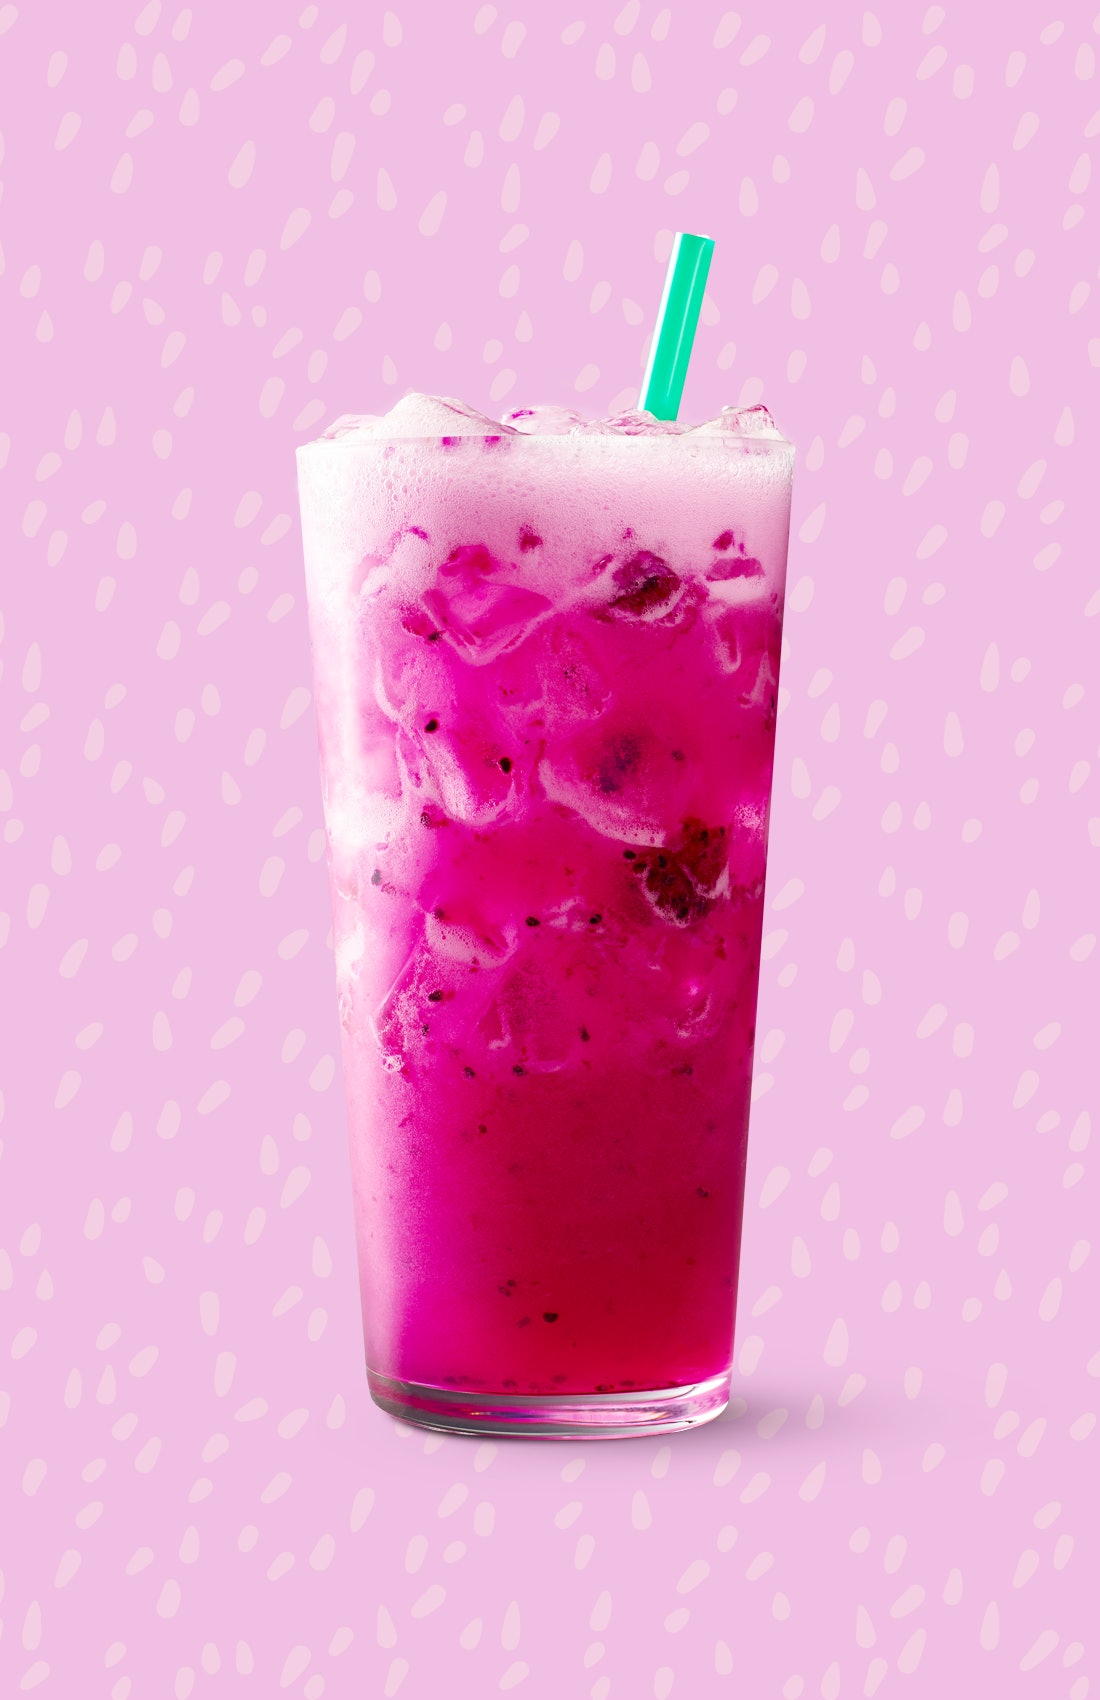 Starbucks New Dragon Drink Is A Bright Pink Instagram Goal